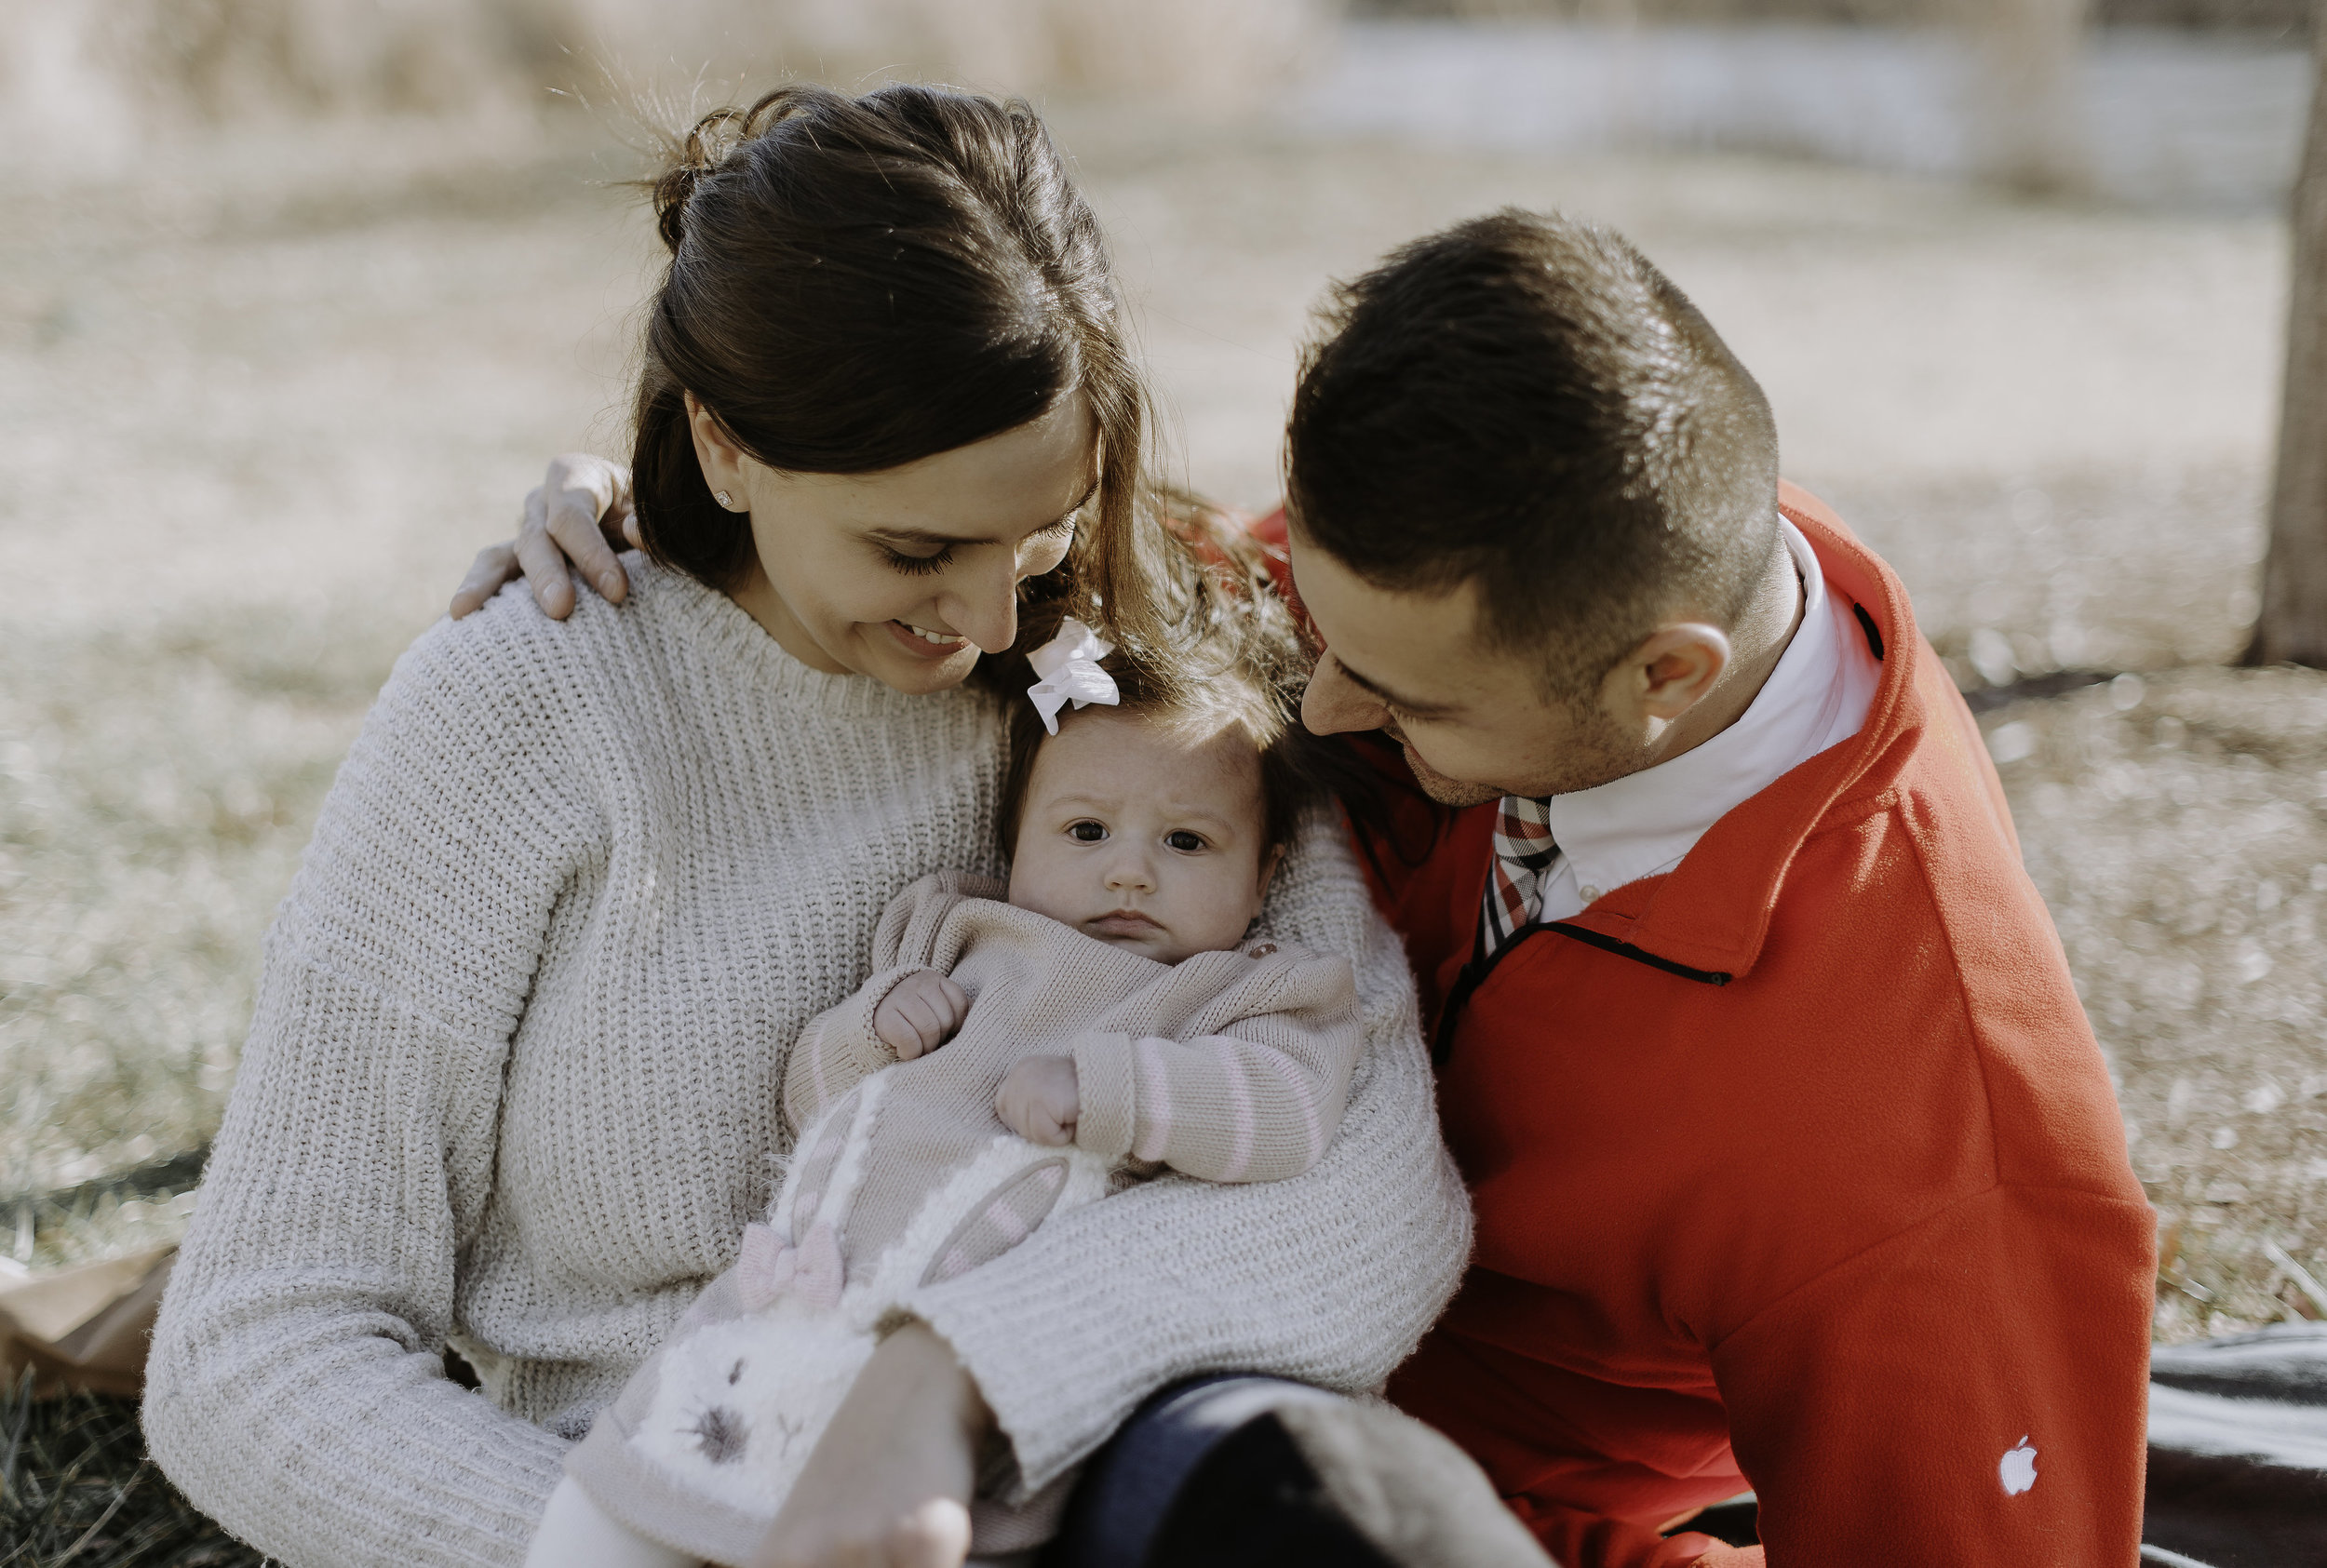 """Softic family - """"We seriously can't thank you enough for our wonderful family photos. It was such a nice experience. Thank you for making us feel comfortable and accommodating to our babies needs. One of the best photographers we have worked with! If anybody needs family photos done, I highly recommend OV Photography."""""""